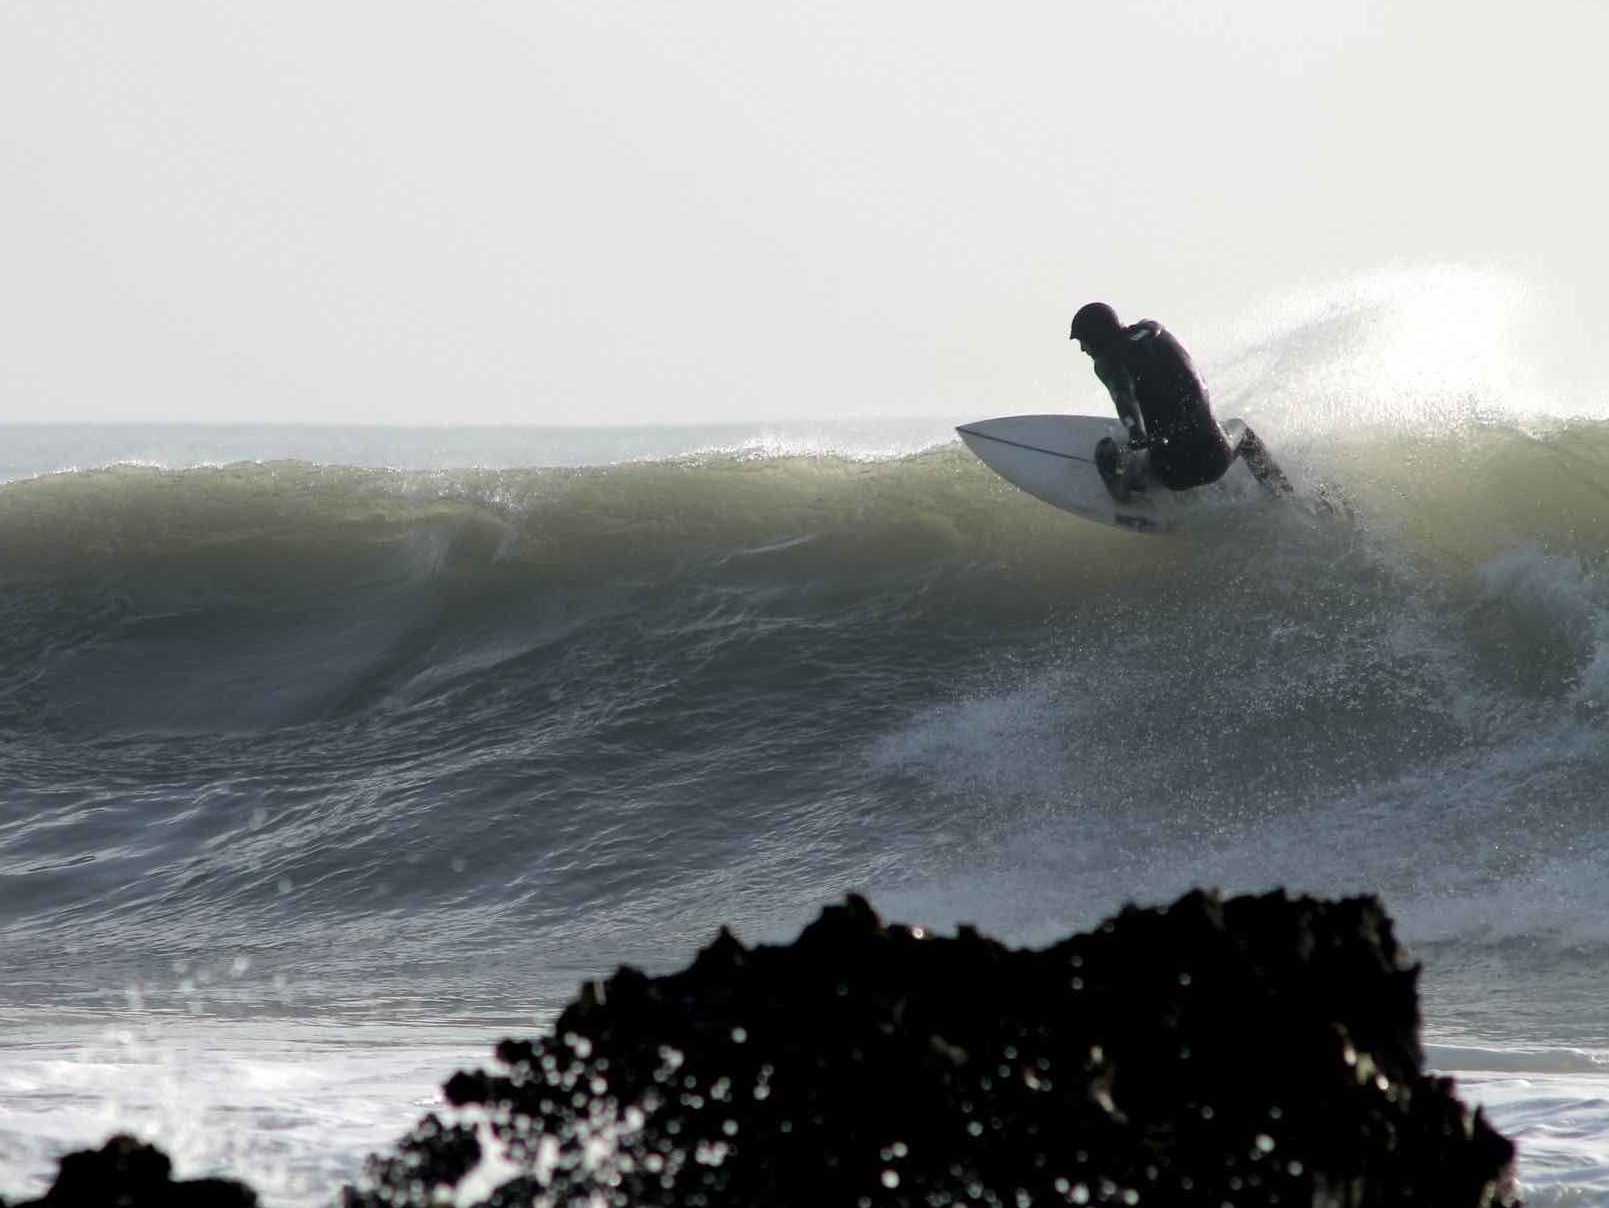 Surfing isle of wight freshwater bay best surf spots south coast